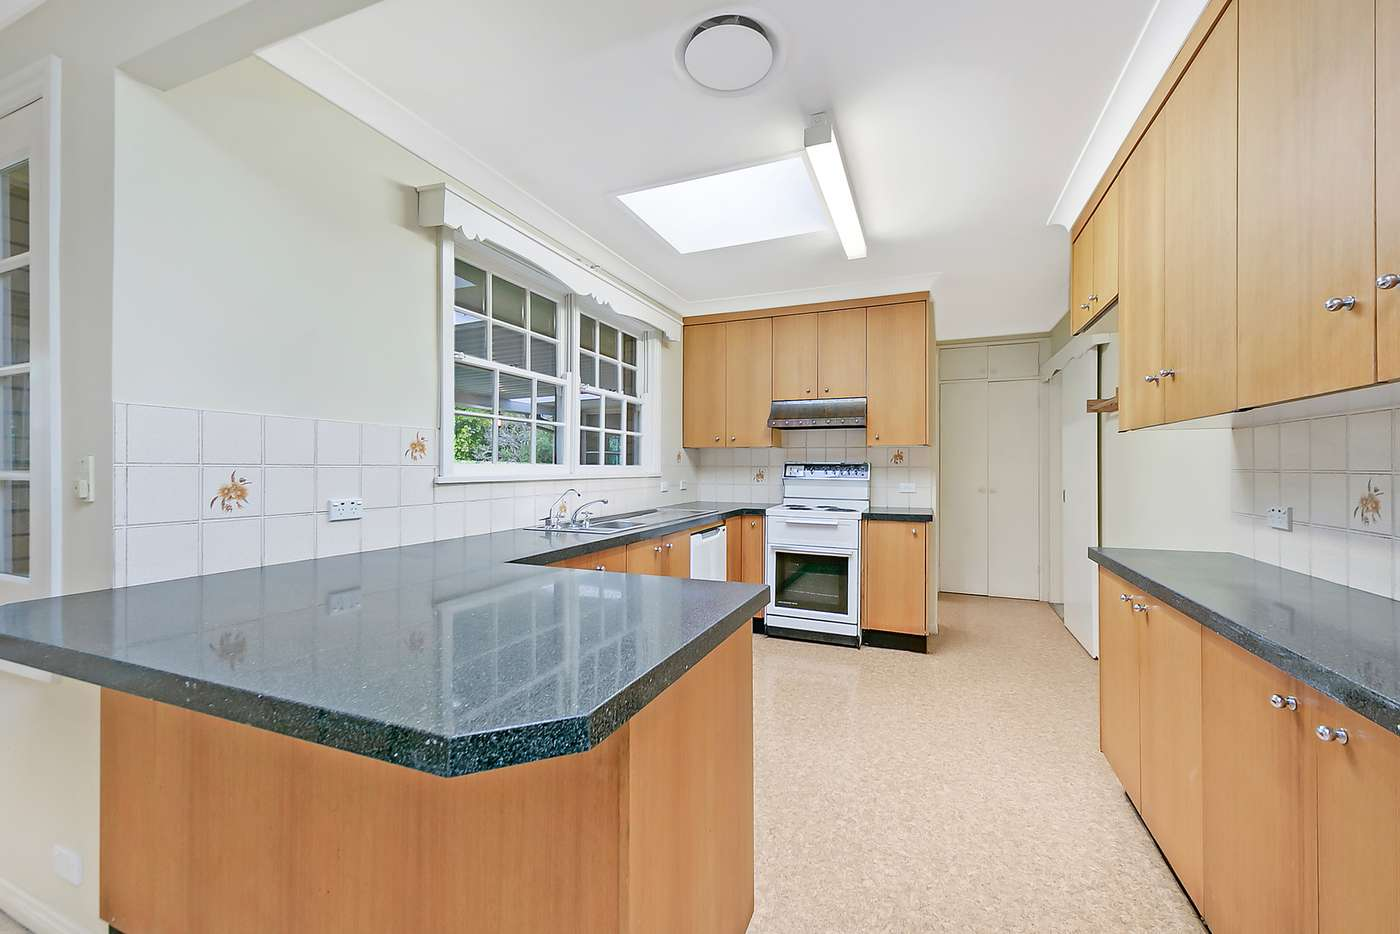 Fifth view of Homely house listing, 101 Warrimoo Avenue, St Ives NSW 2075